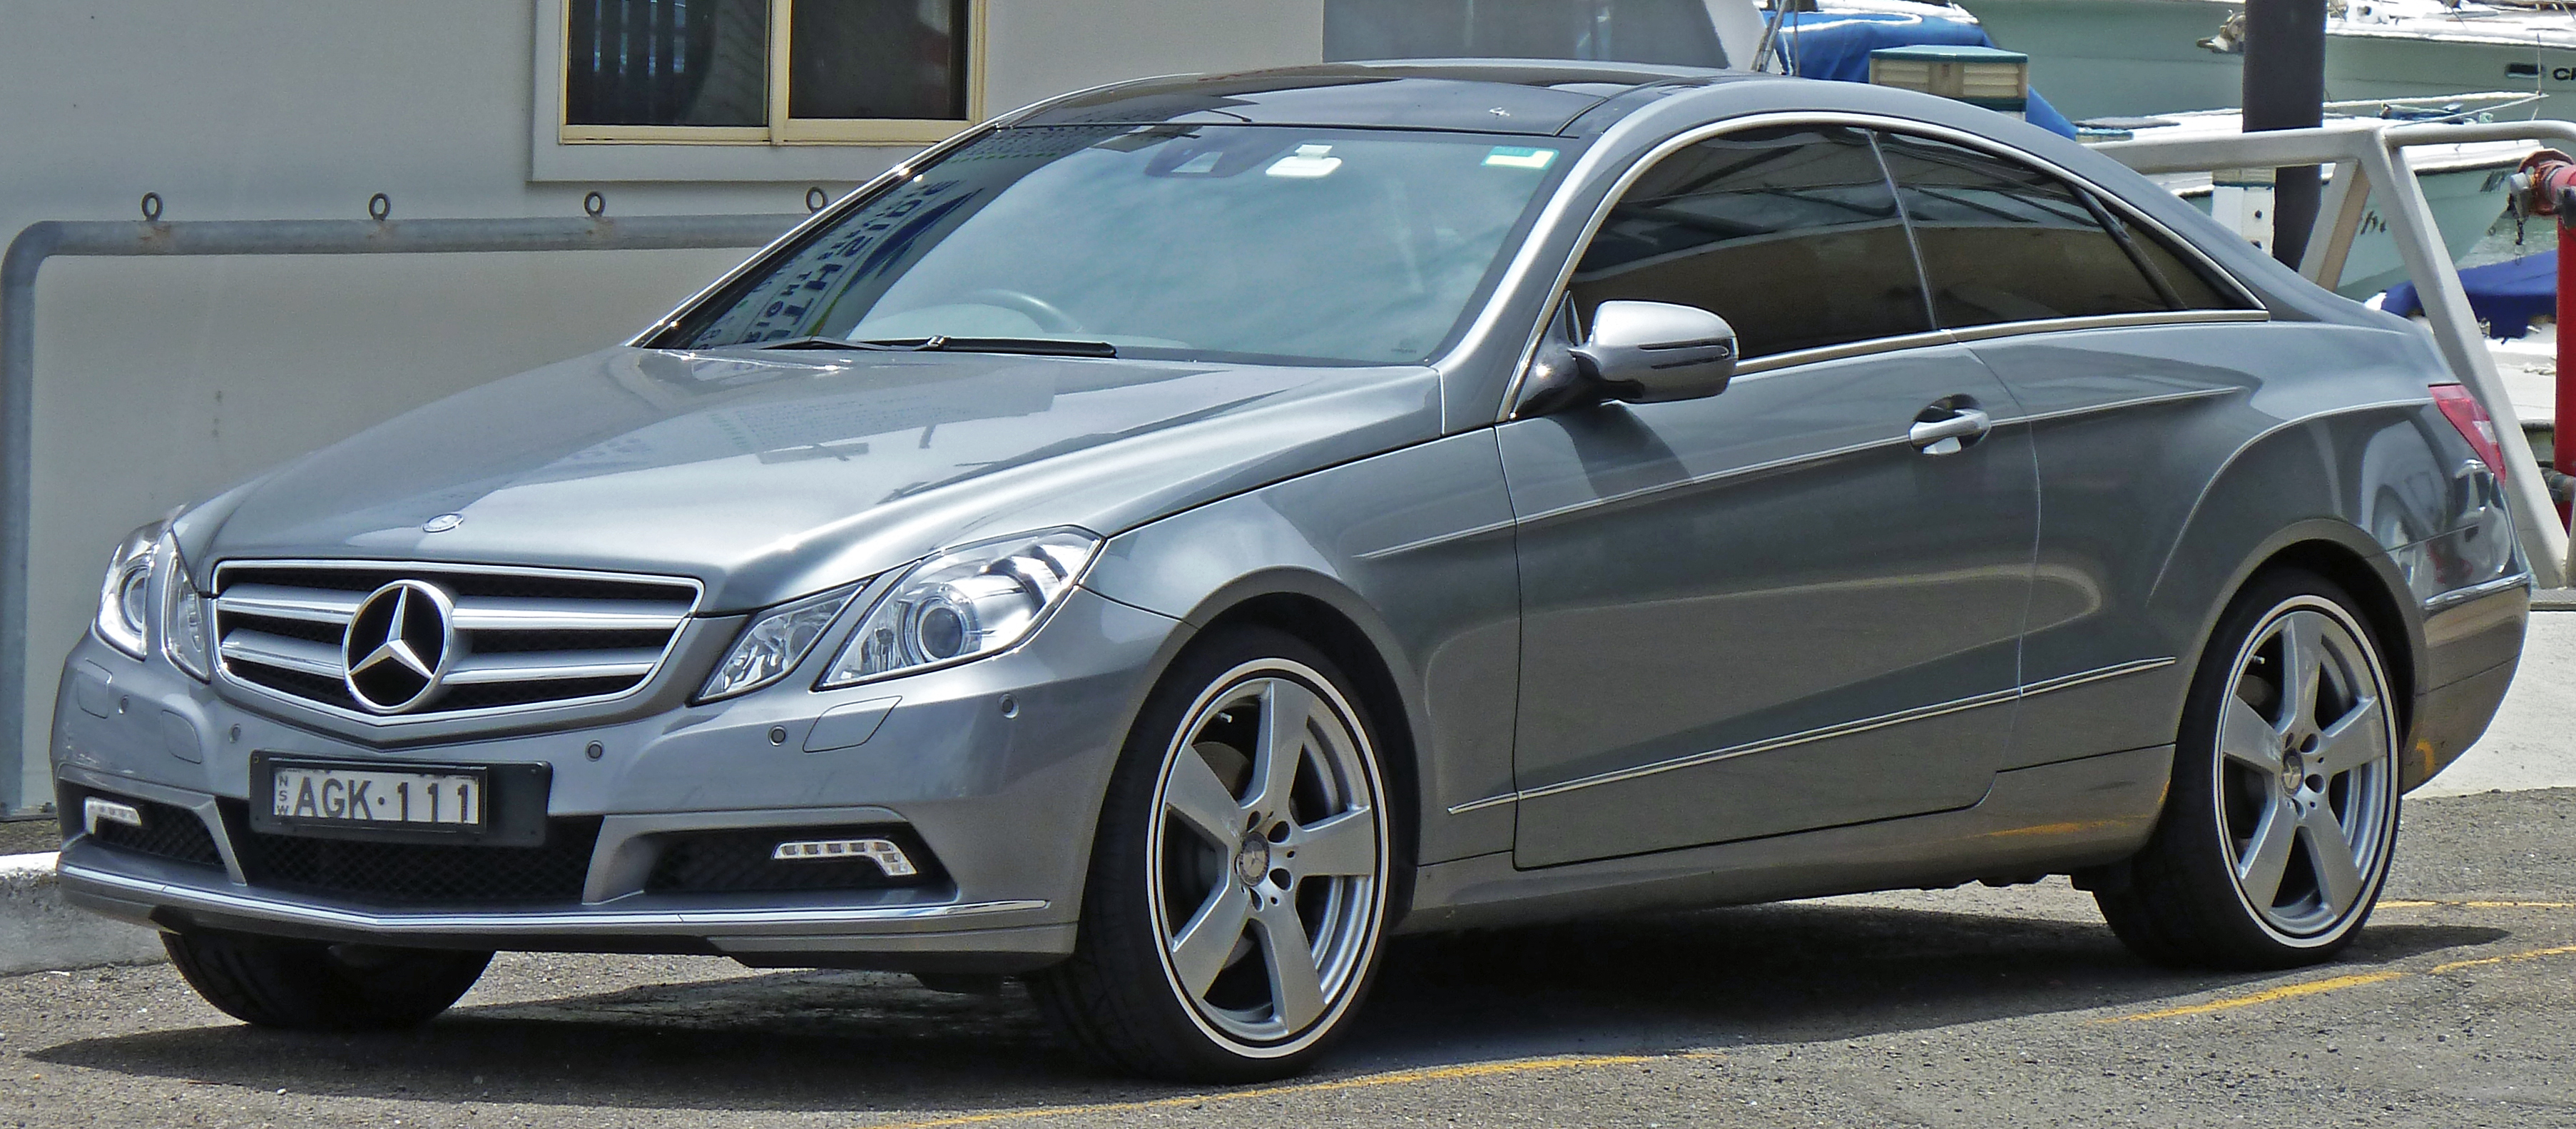 2010 Mercedes Benz E Photos Informations Articles